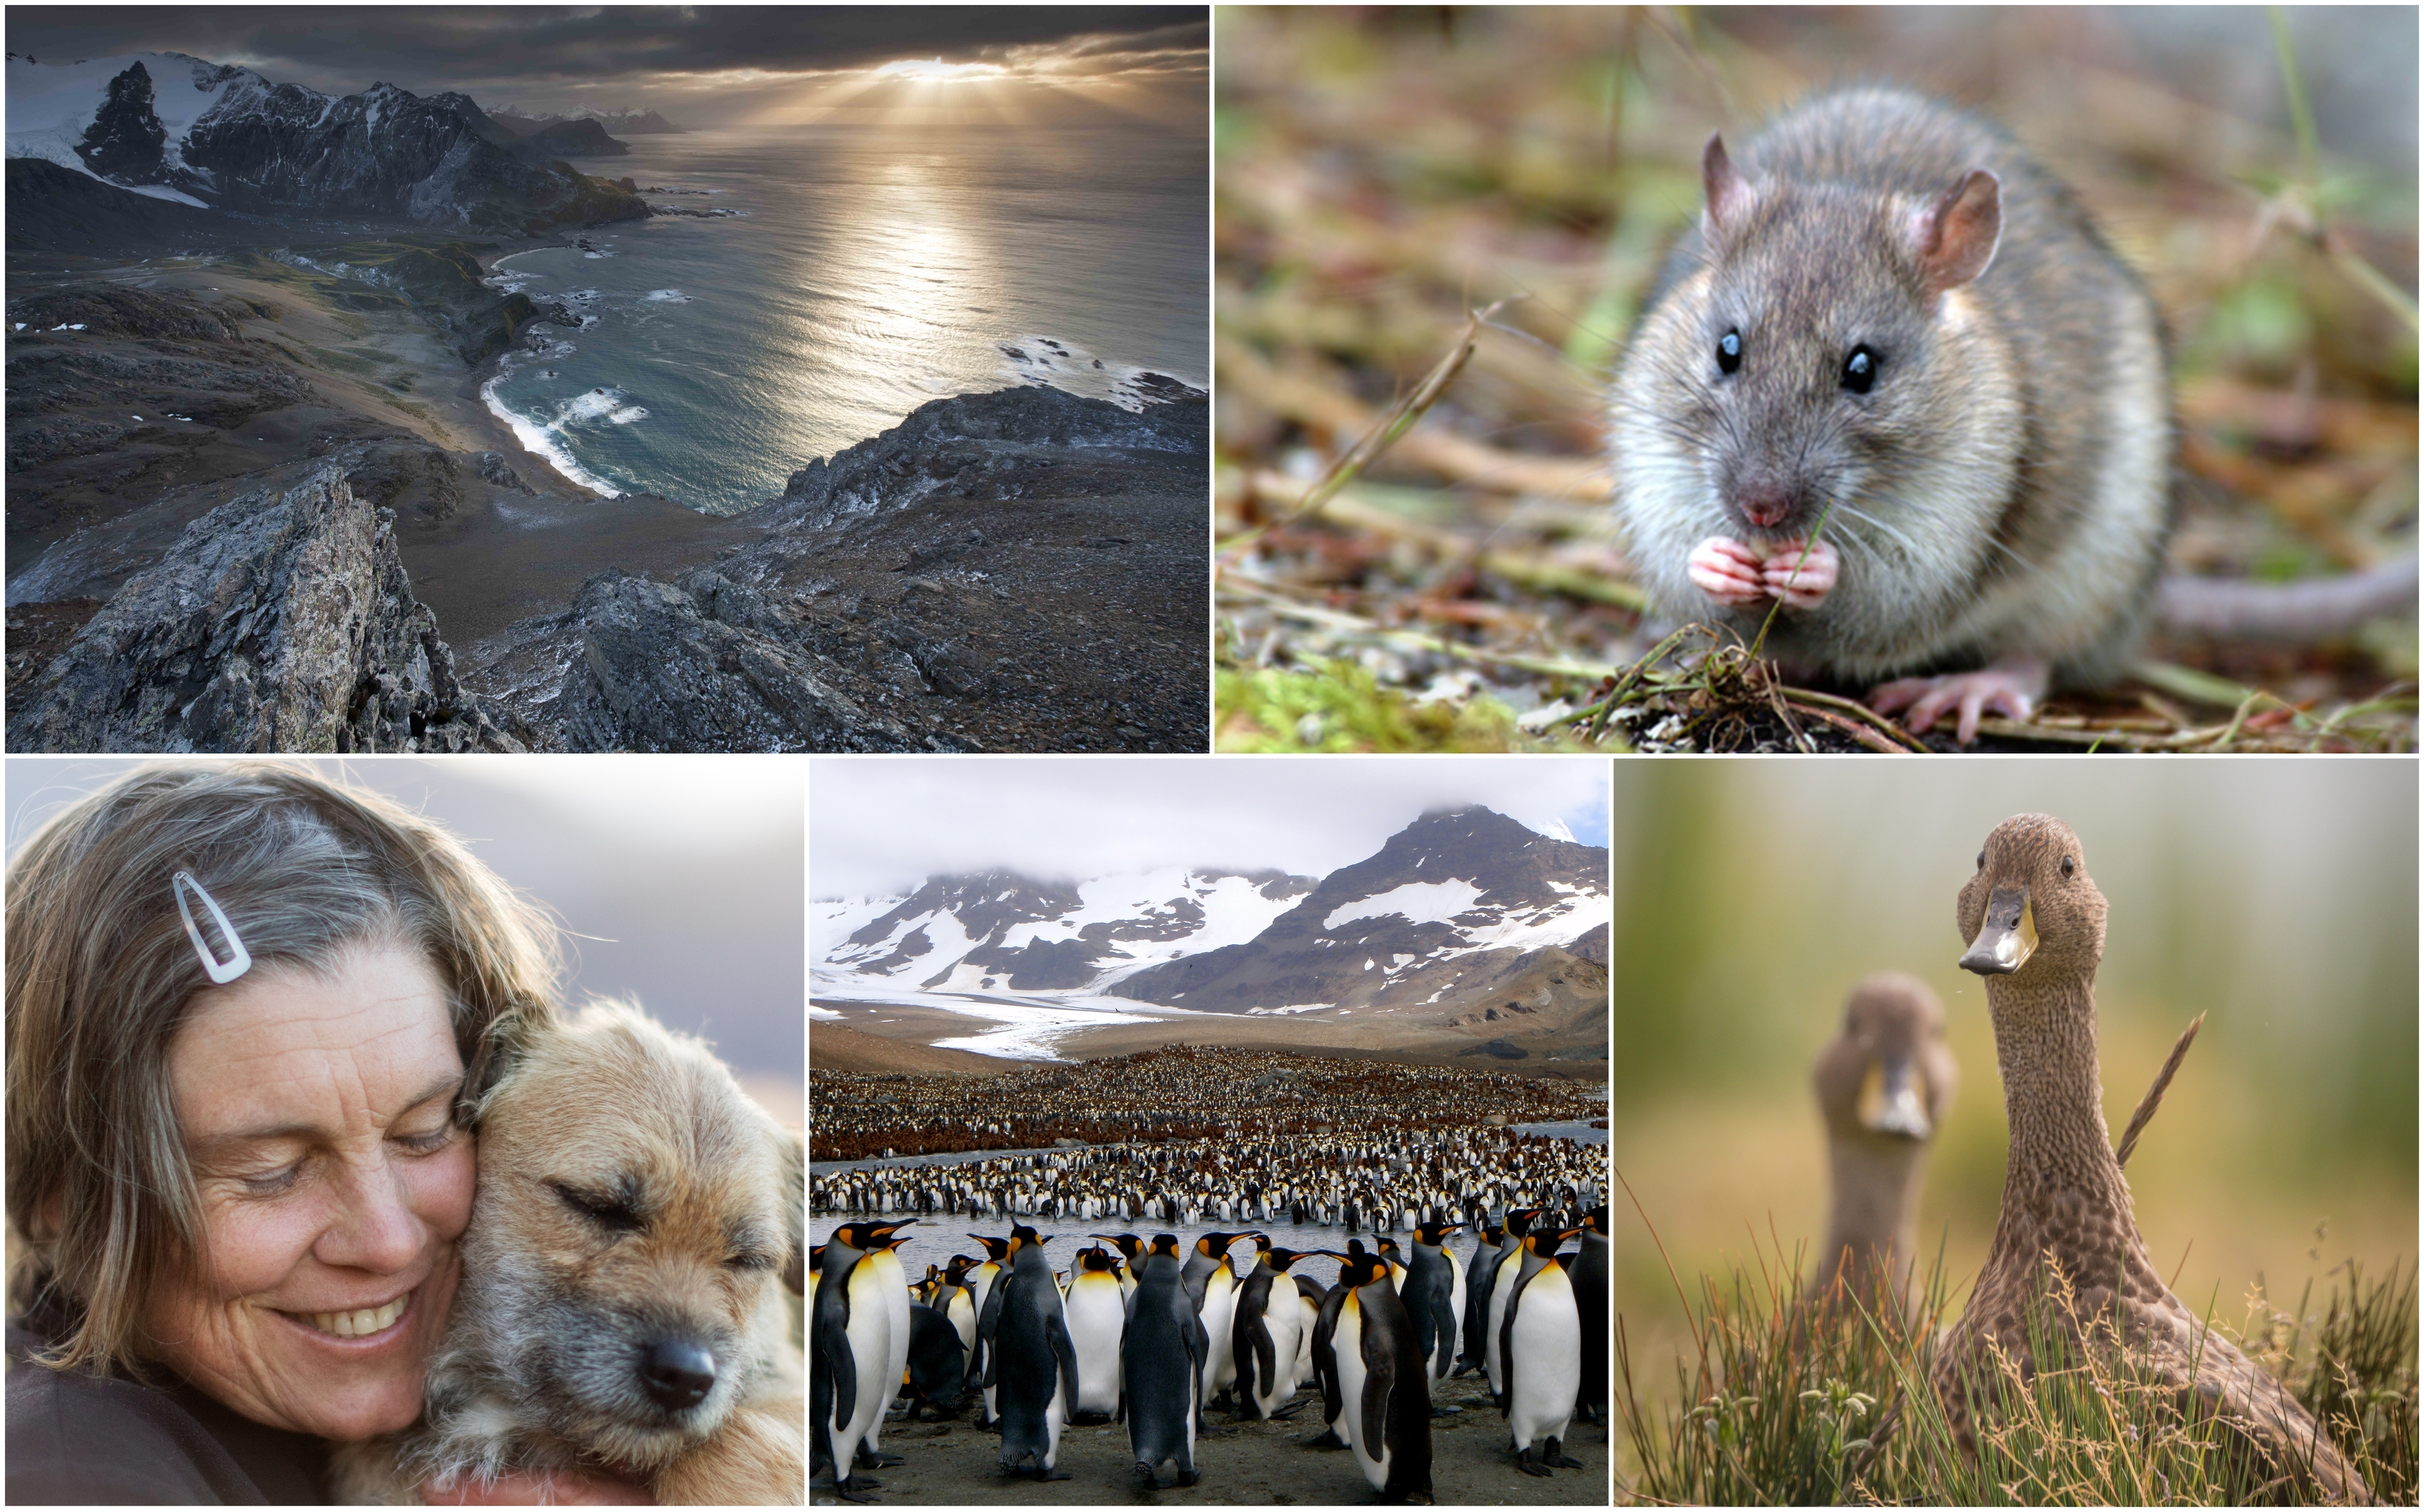 An incredible team effort means South Georgia's wildlife is now protected from invasive rodents first introduced to the island by man over 200 years ago.